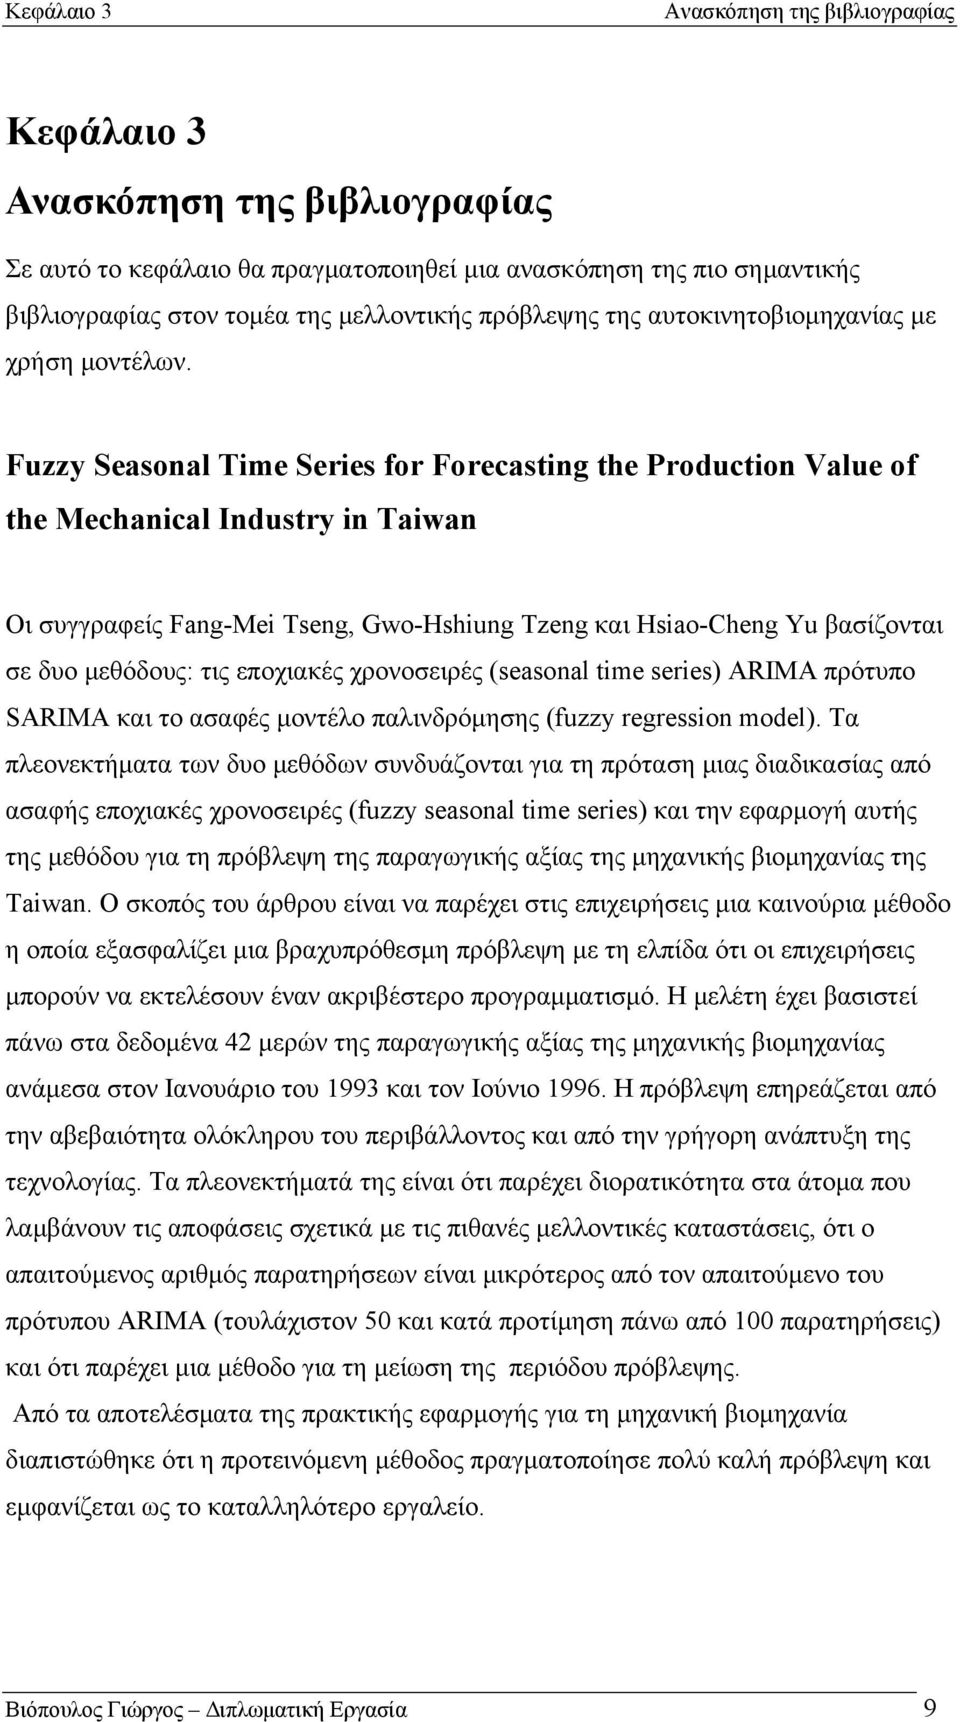 Fuzzy Seasonal Time Series for Forecasting the Production Value of the Mechanical Industry in Taiwan Οι συγγραφείς Fang-Mei Tseng, Gwo-Hshiung Tzeng και Hsiao-Cheng Yu βασίζονται σε δυο μεθόδους: τις